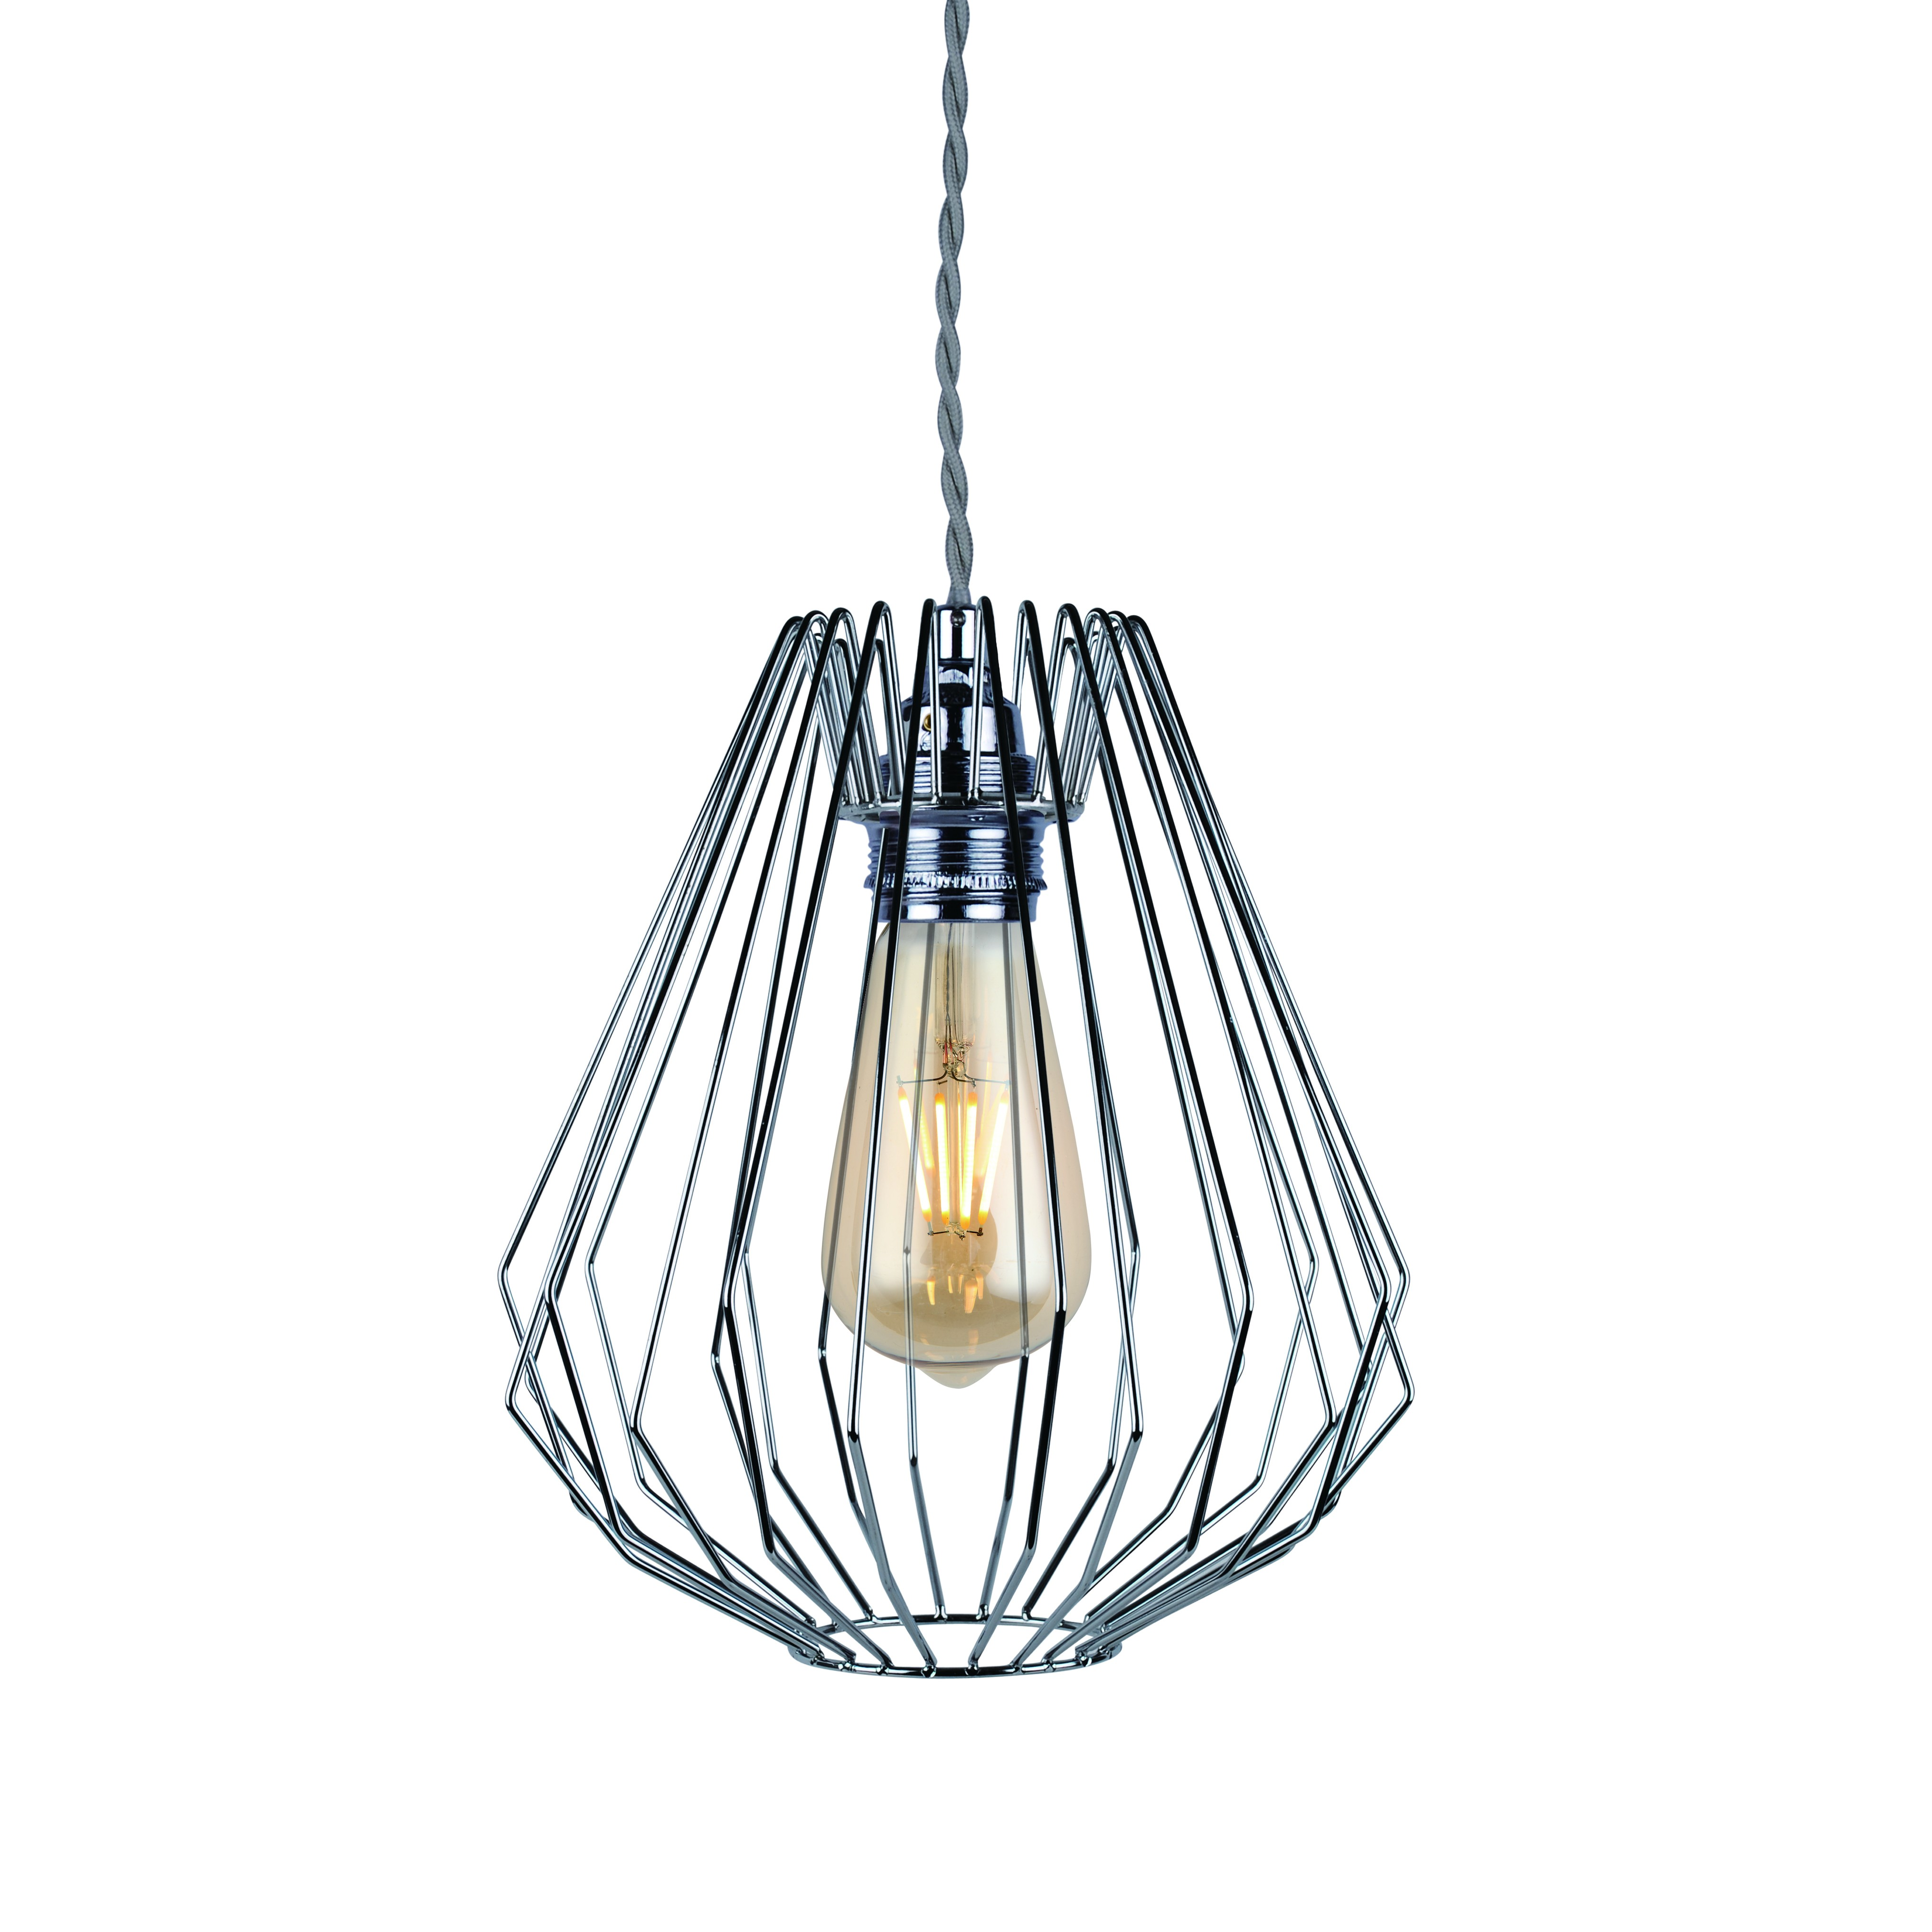 Hanging Light Fittings Wholesale: Polished Chrome Wire Geometric Ceiling Light Fitting